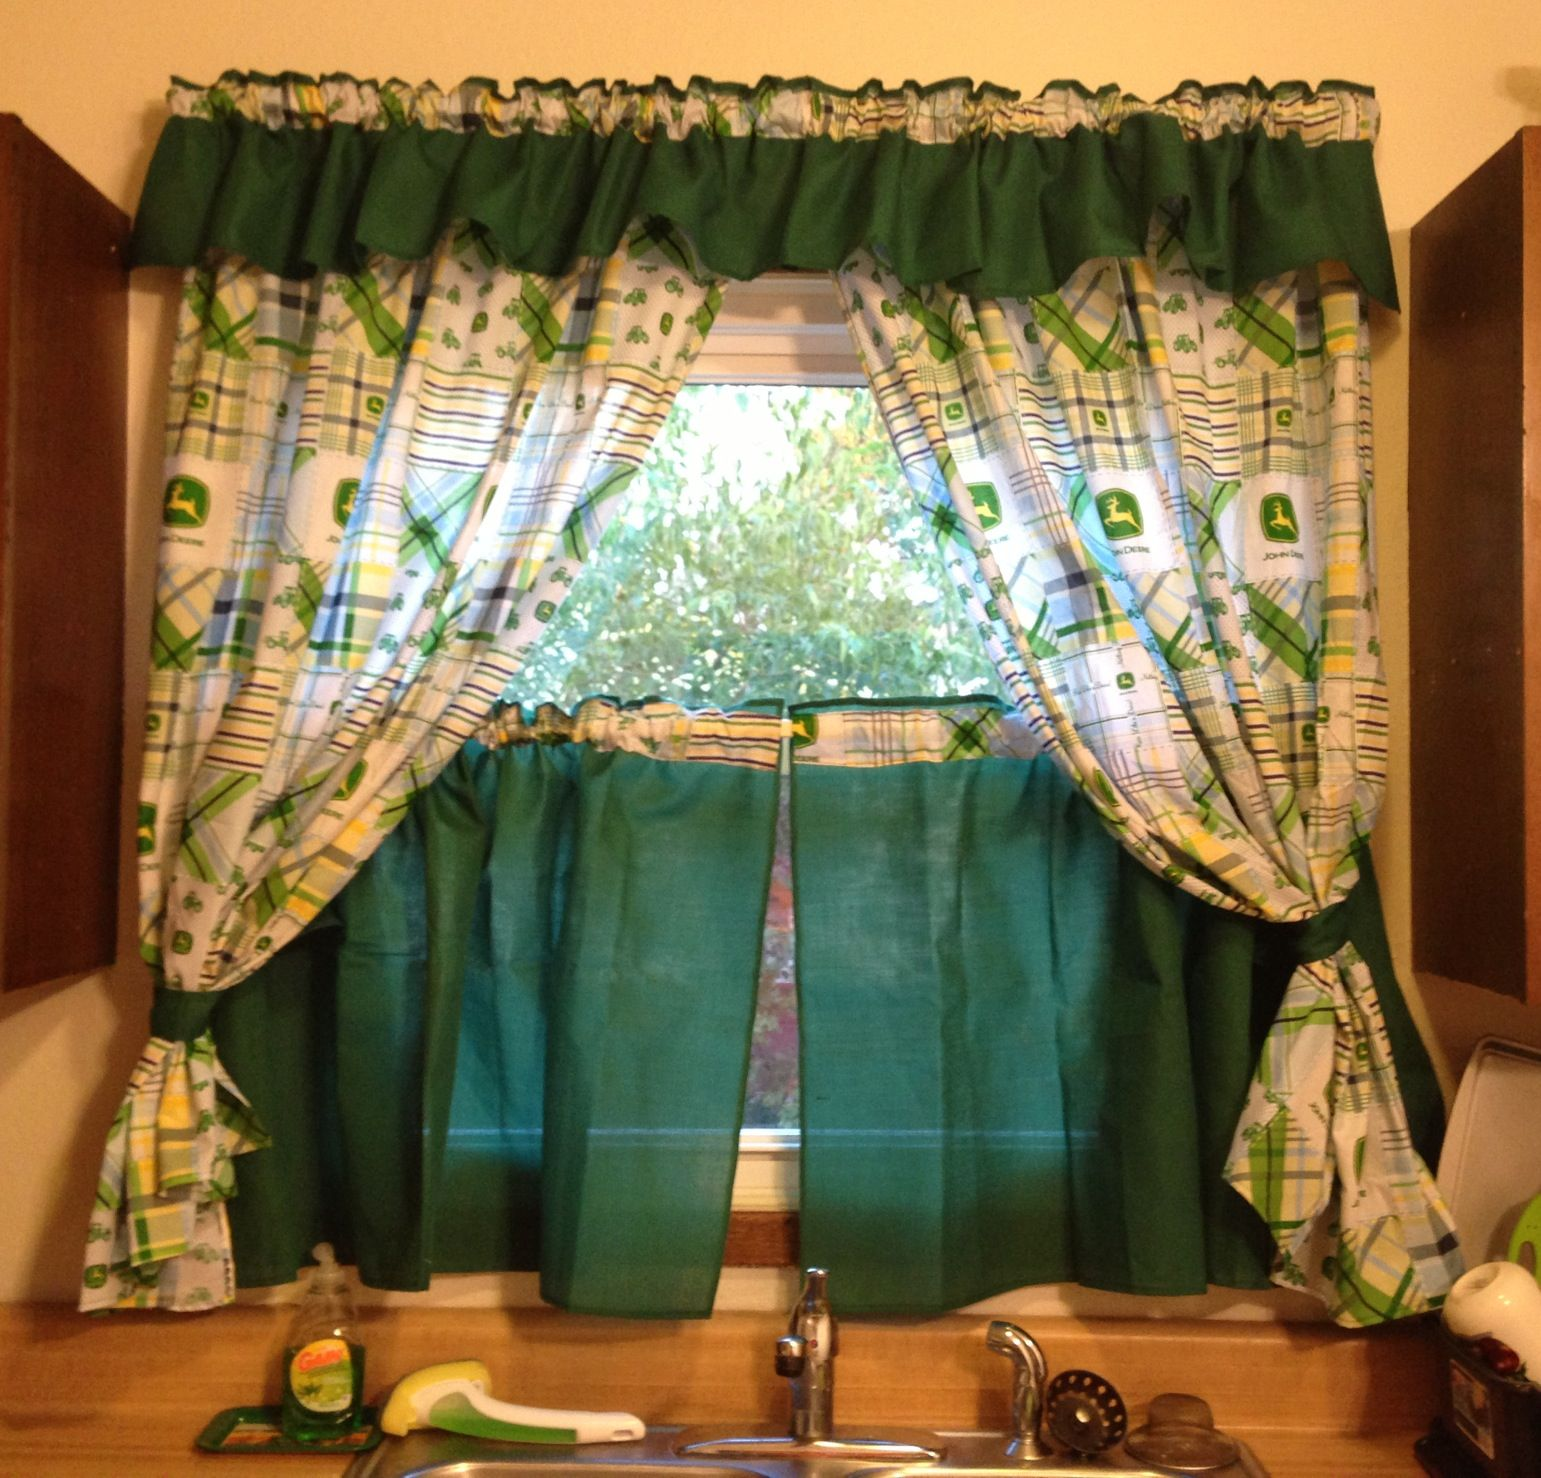 Green Kitchen Curtain Ideas: My NEW John Deere Kitchen Curtains! Love Them! ;D